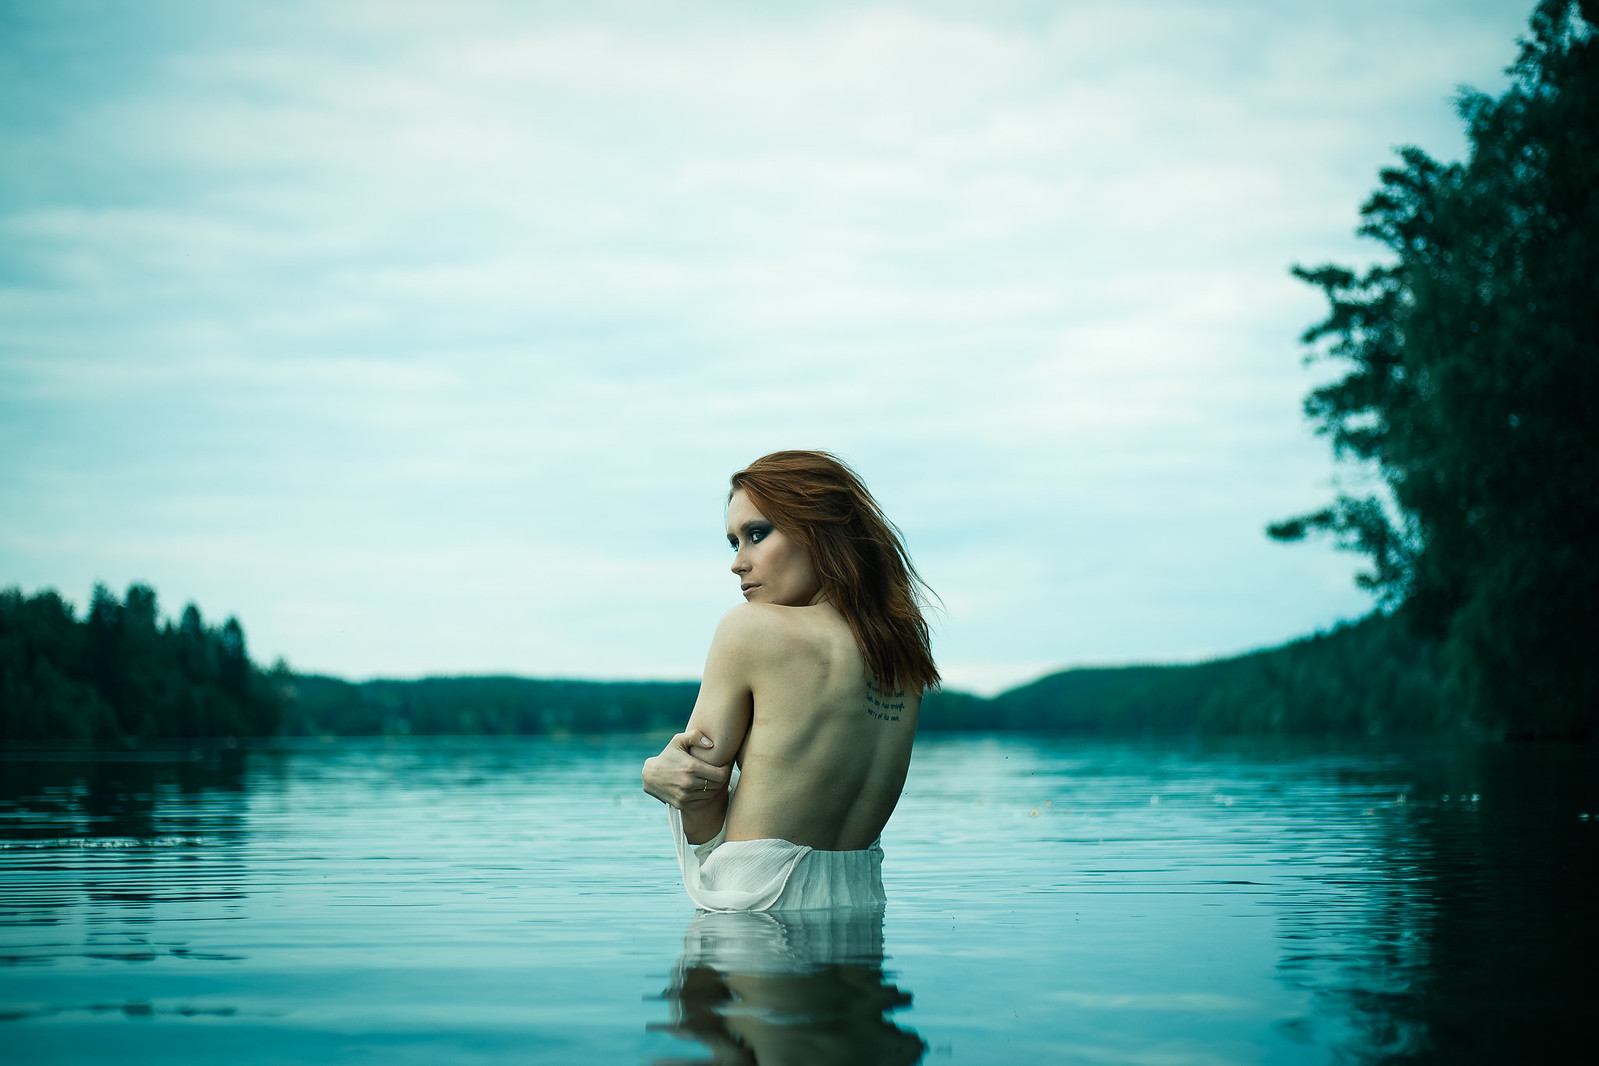 Maiden of the lake